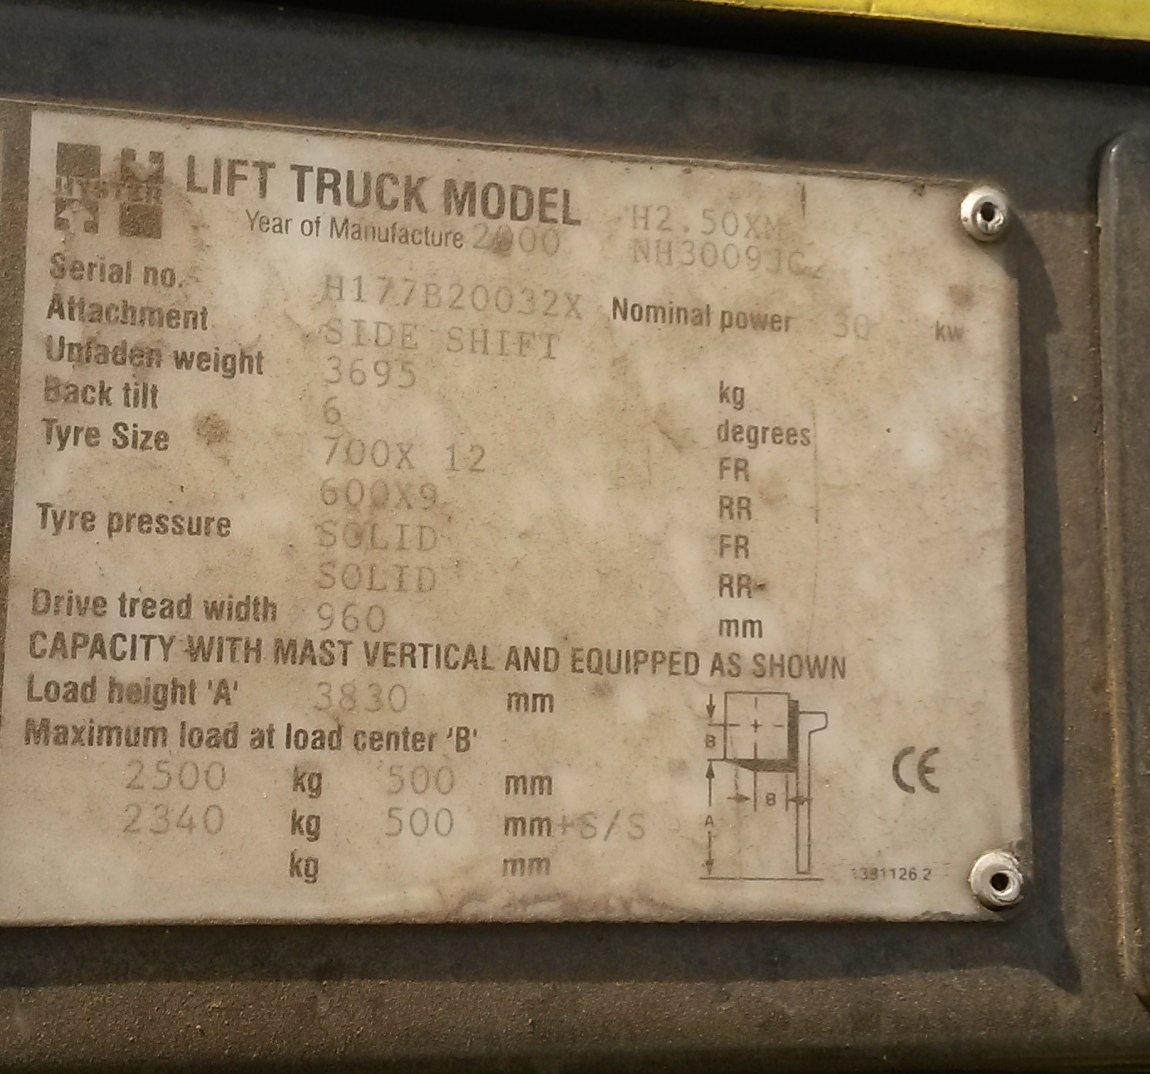 Hyster Forklift Serial Number Info H80xl Wiring Diagram Rental Rates Consist Each Gives Assigned H40h H450h Capacity Before Materials Handling Corporation Did Indicate Within Post Began That Identifies Of